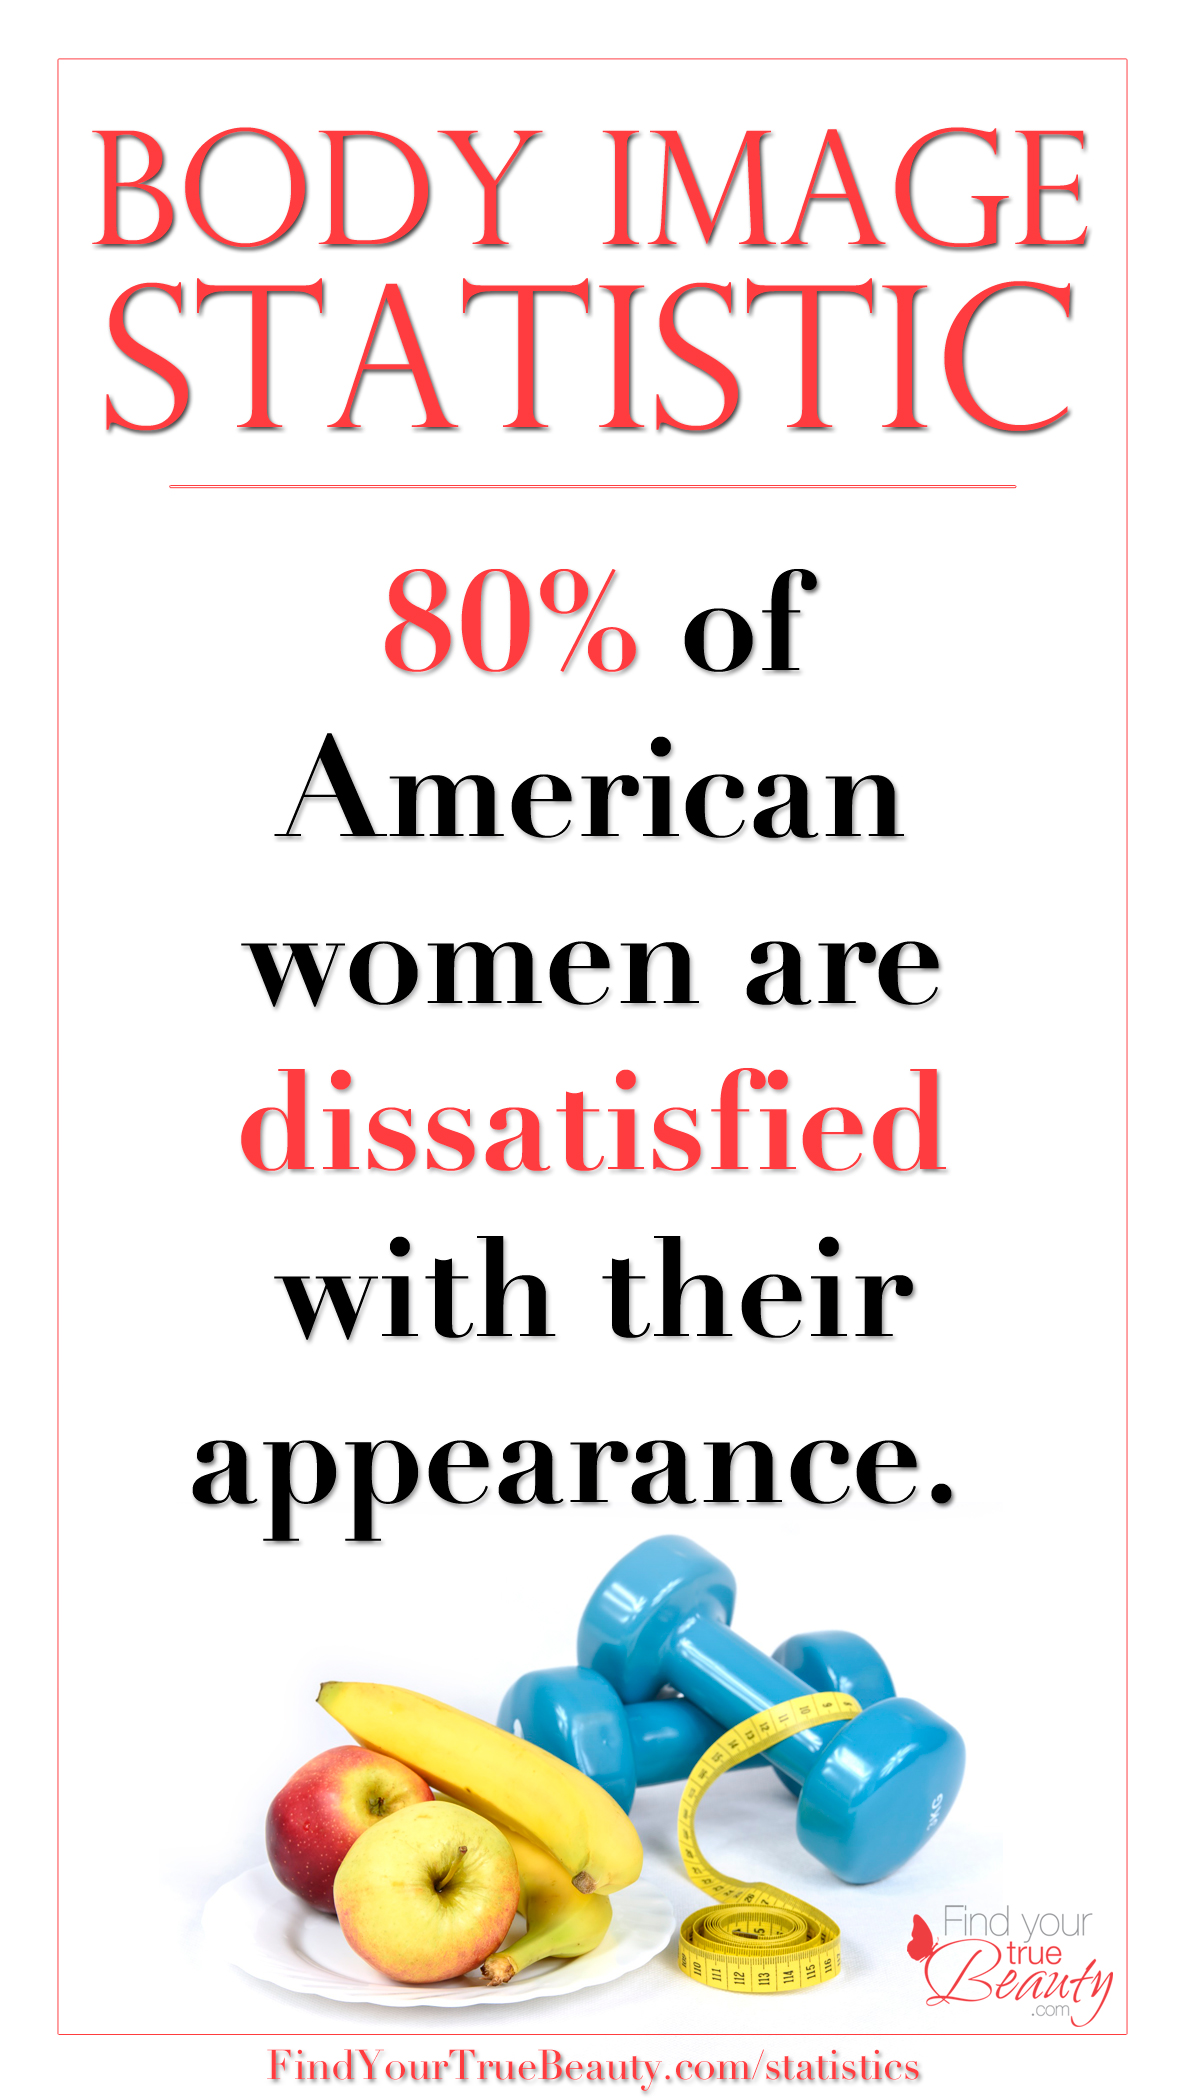 Body Image Statistic: 80% of American women are dissatisfied with their appearance #bodyimage